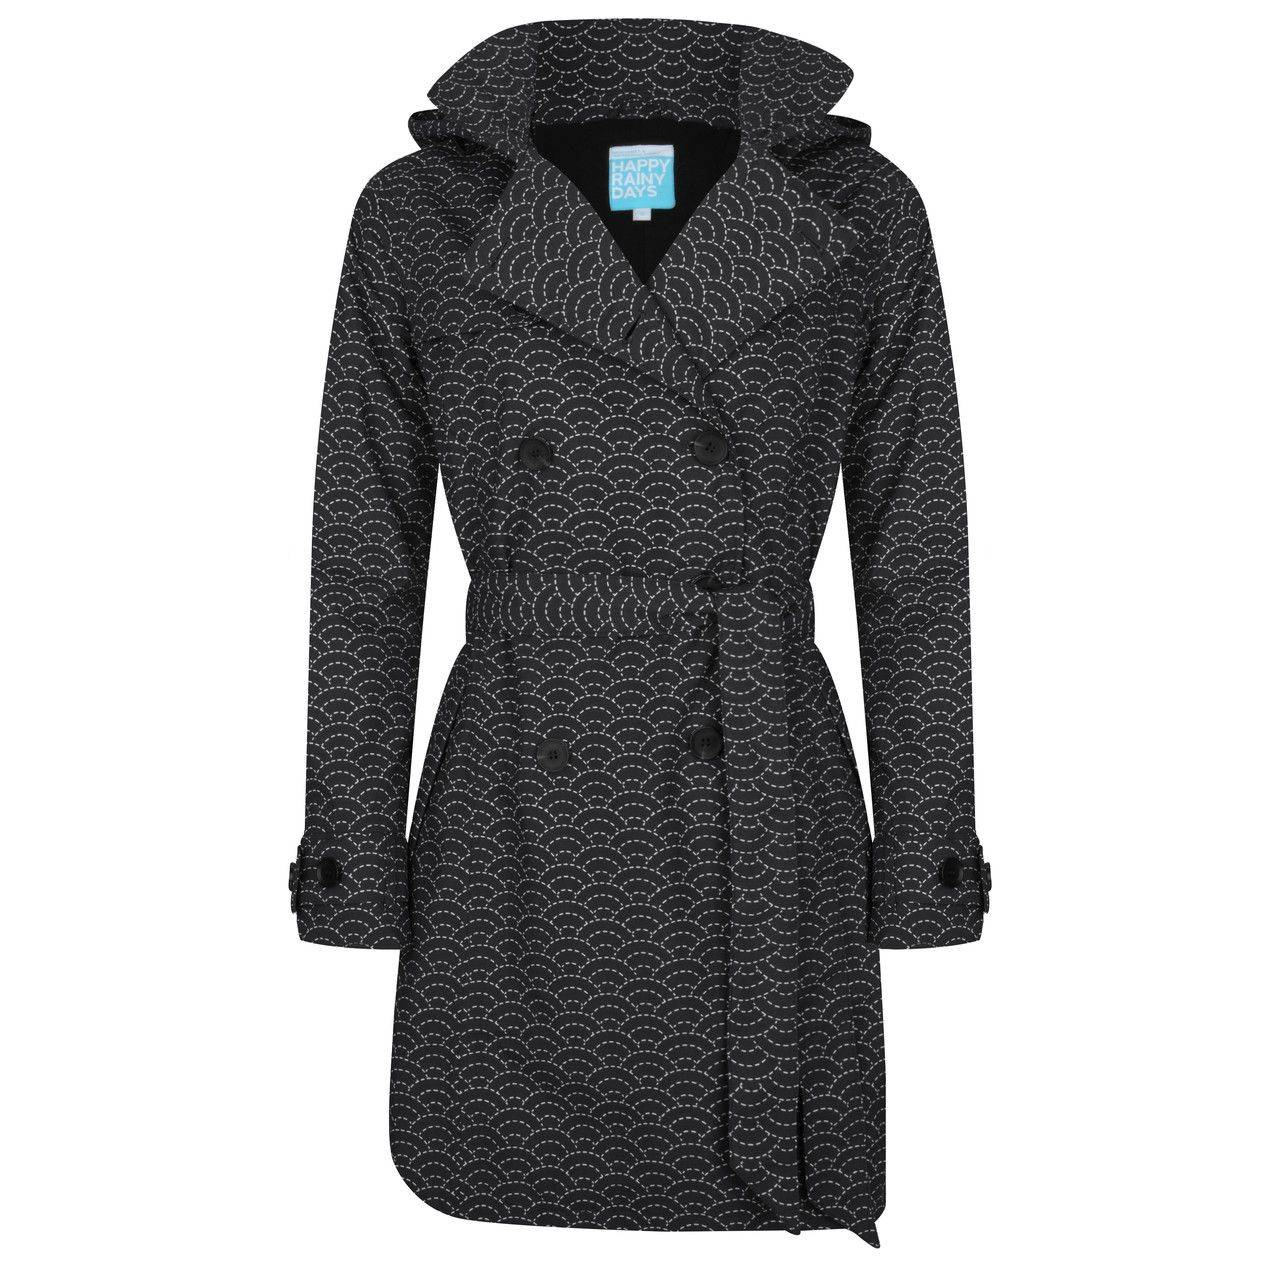 Happy Rainy Days Trench Coat, Black with White Pattern, Color: Black/White Pattern, Size: L